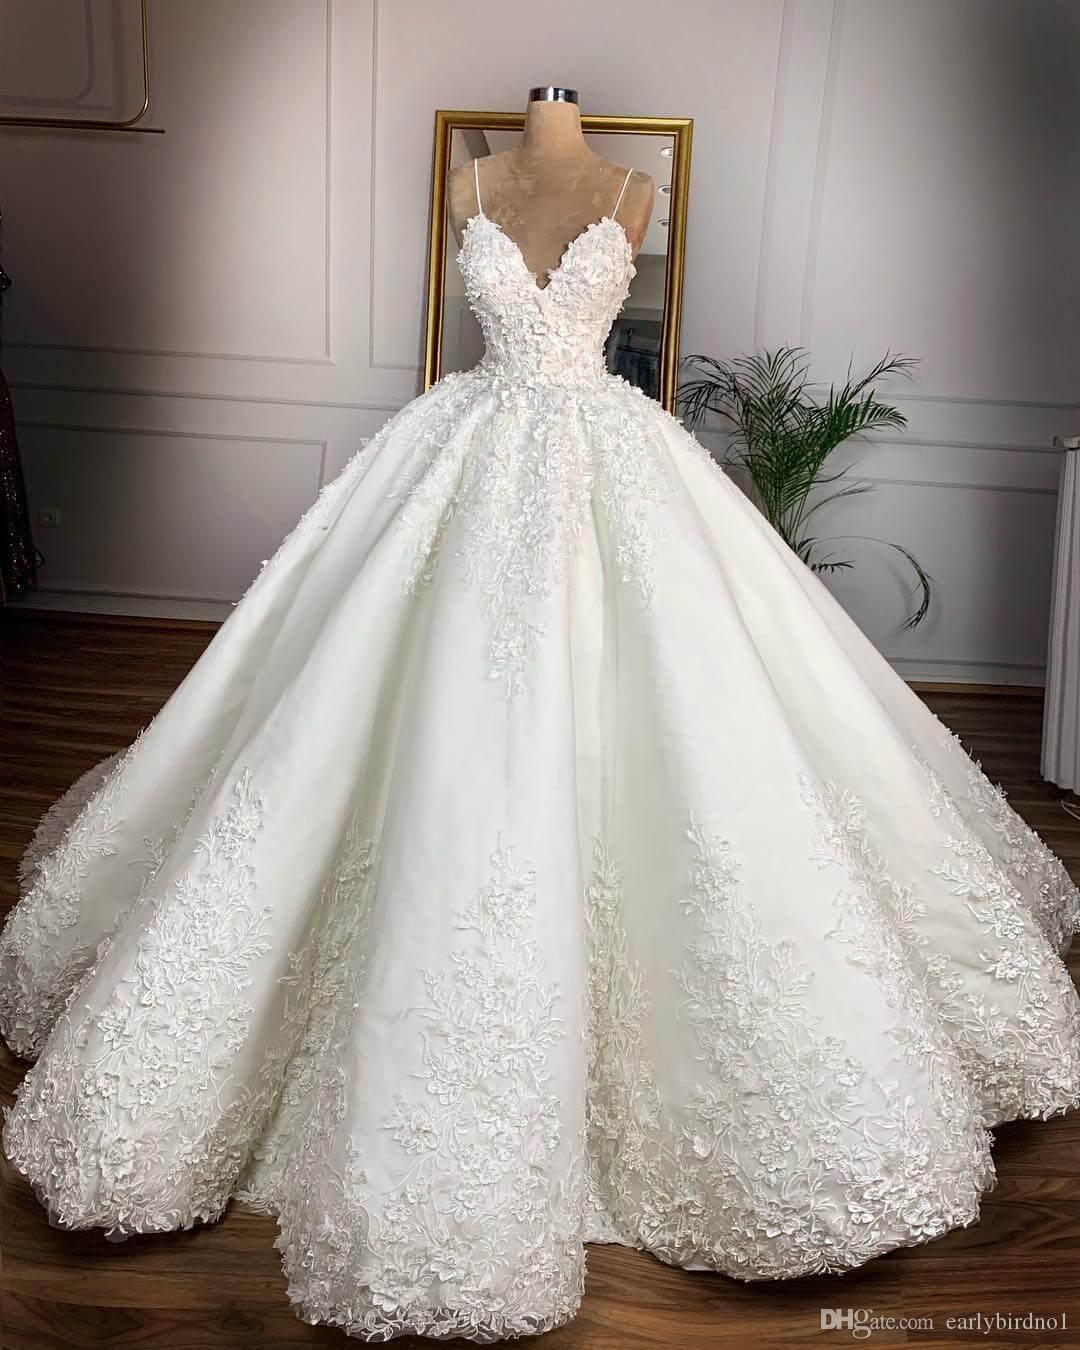 Vintage White Spaghetti Sequined Lace Appliqued Ball Gown Wedidng